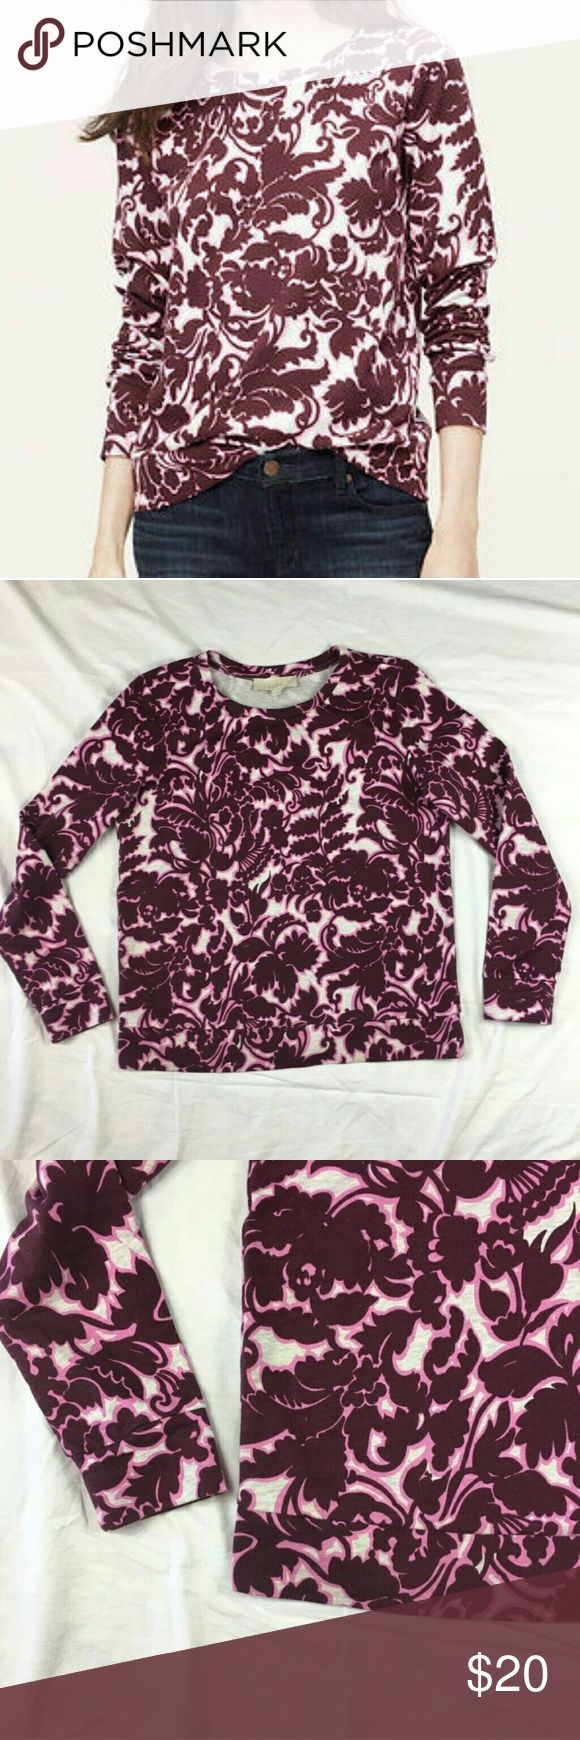 "💠LOFT Light-Weight Top *EUC - Worn just a couple of times! *Burgundy/ Pink/Gray print  *Size: Large (a little roomy, boxy) *Length: 24"" *Front Width: 23"" across *87% Cotton / 13% Polyester *Machine Washable LOFT Tops Tunics"